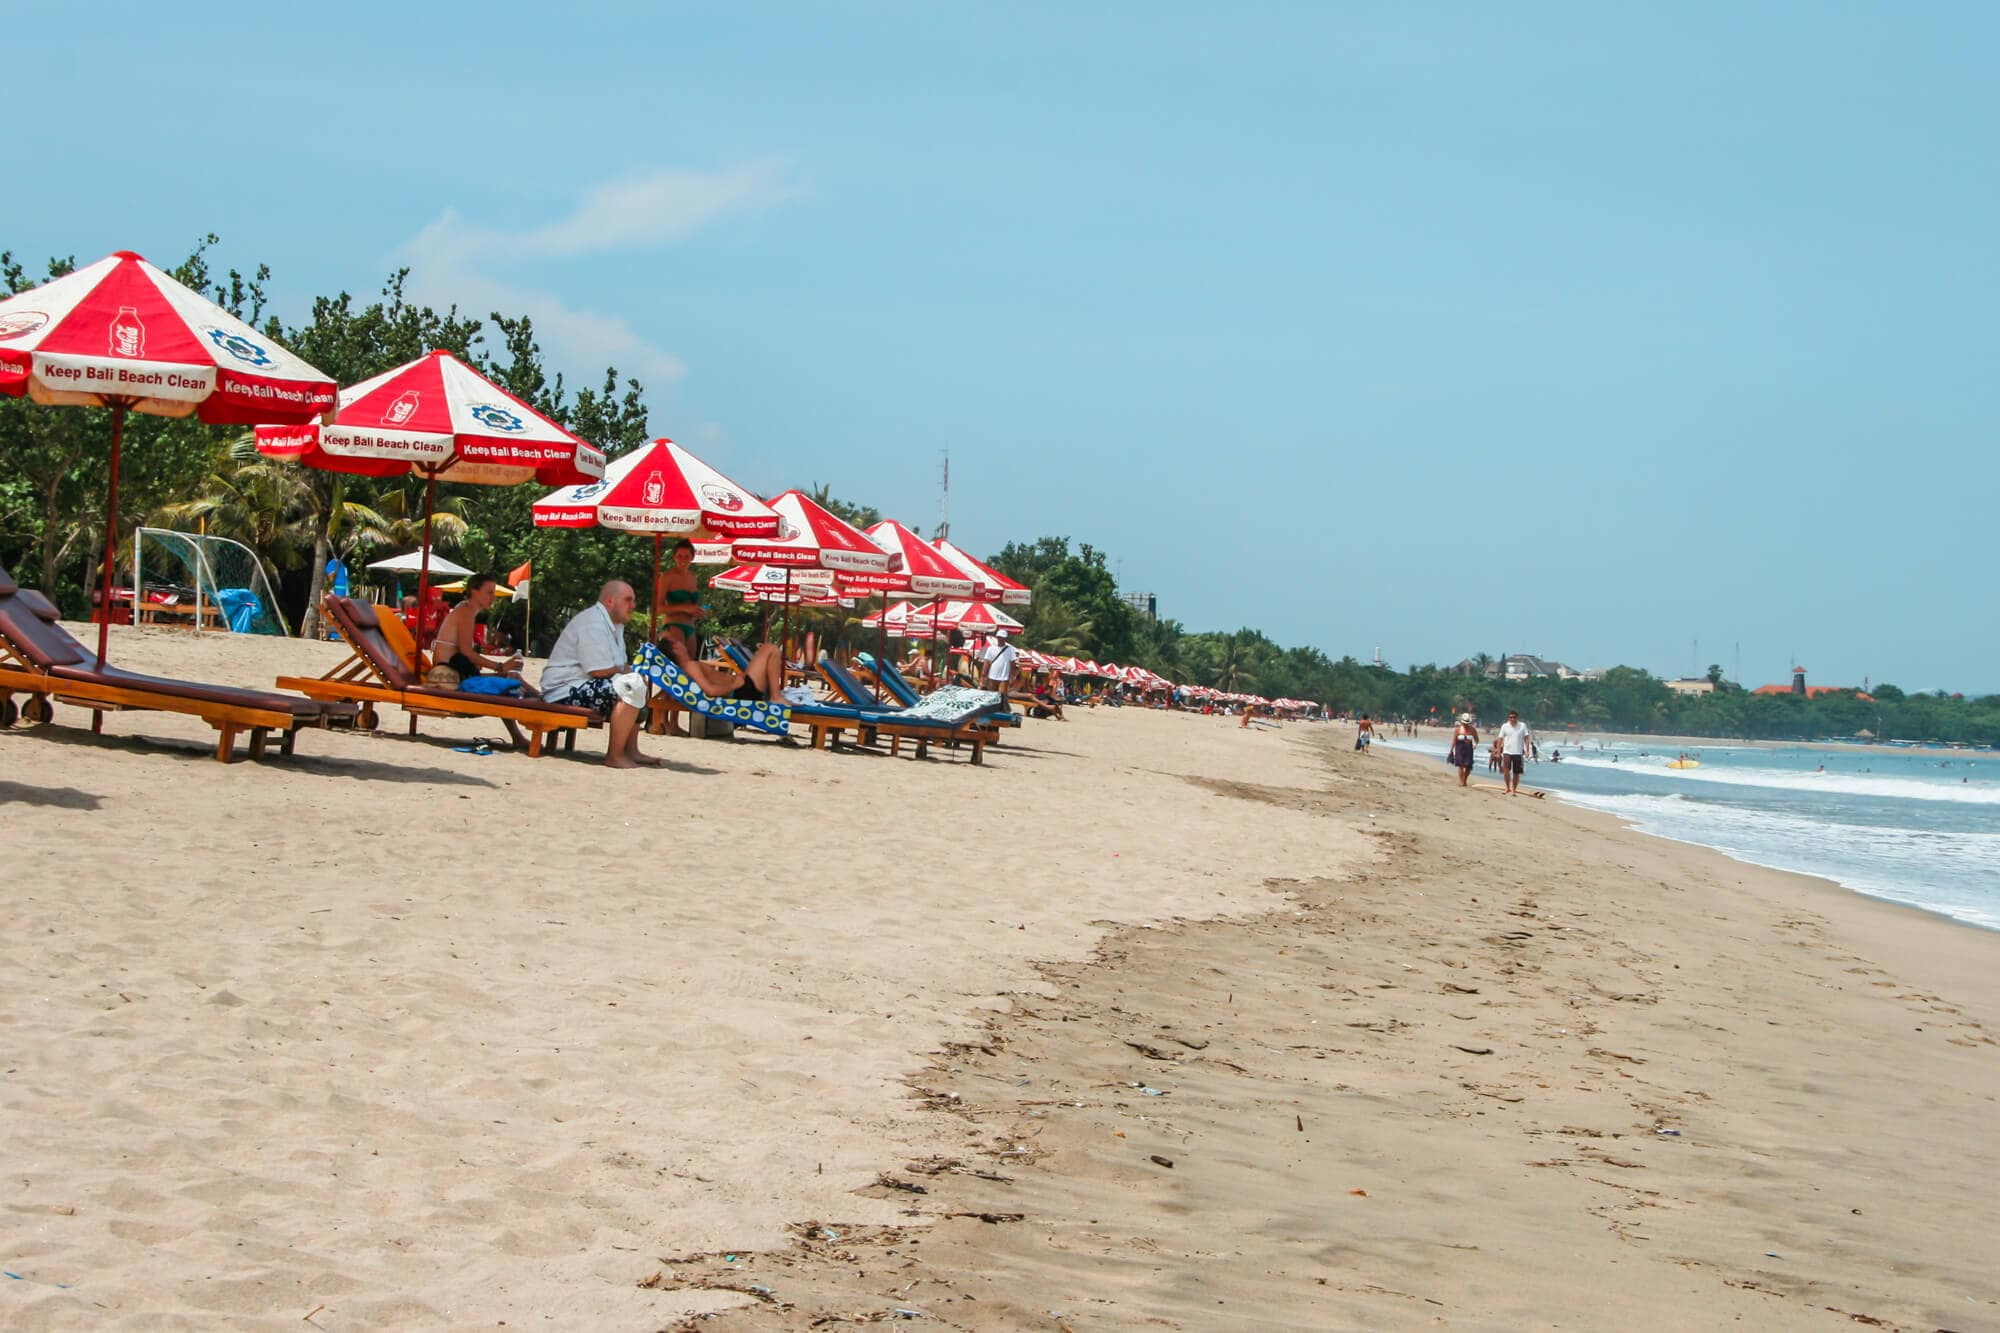 Where to stay in Bali: A complete guide to the different areas on the island - Kuta Beach